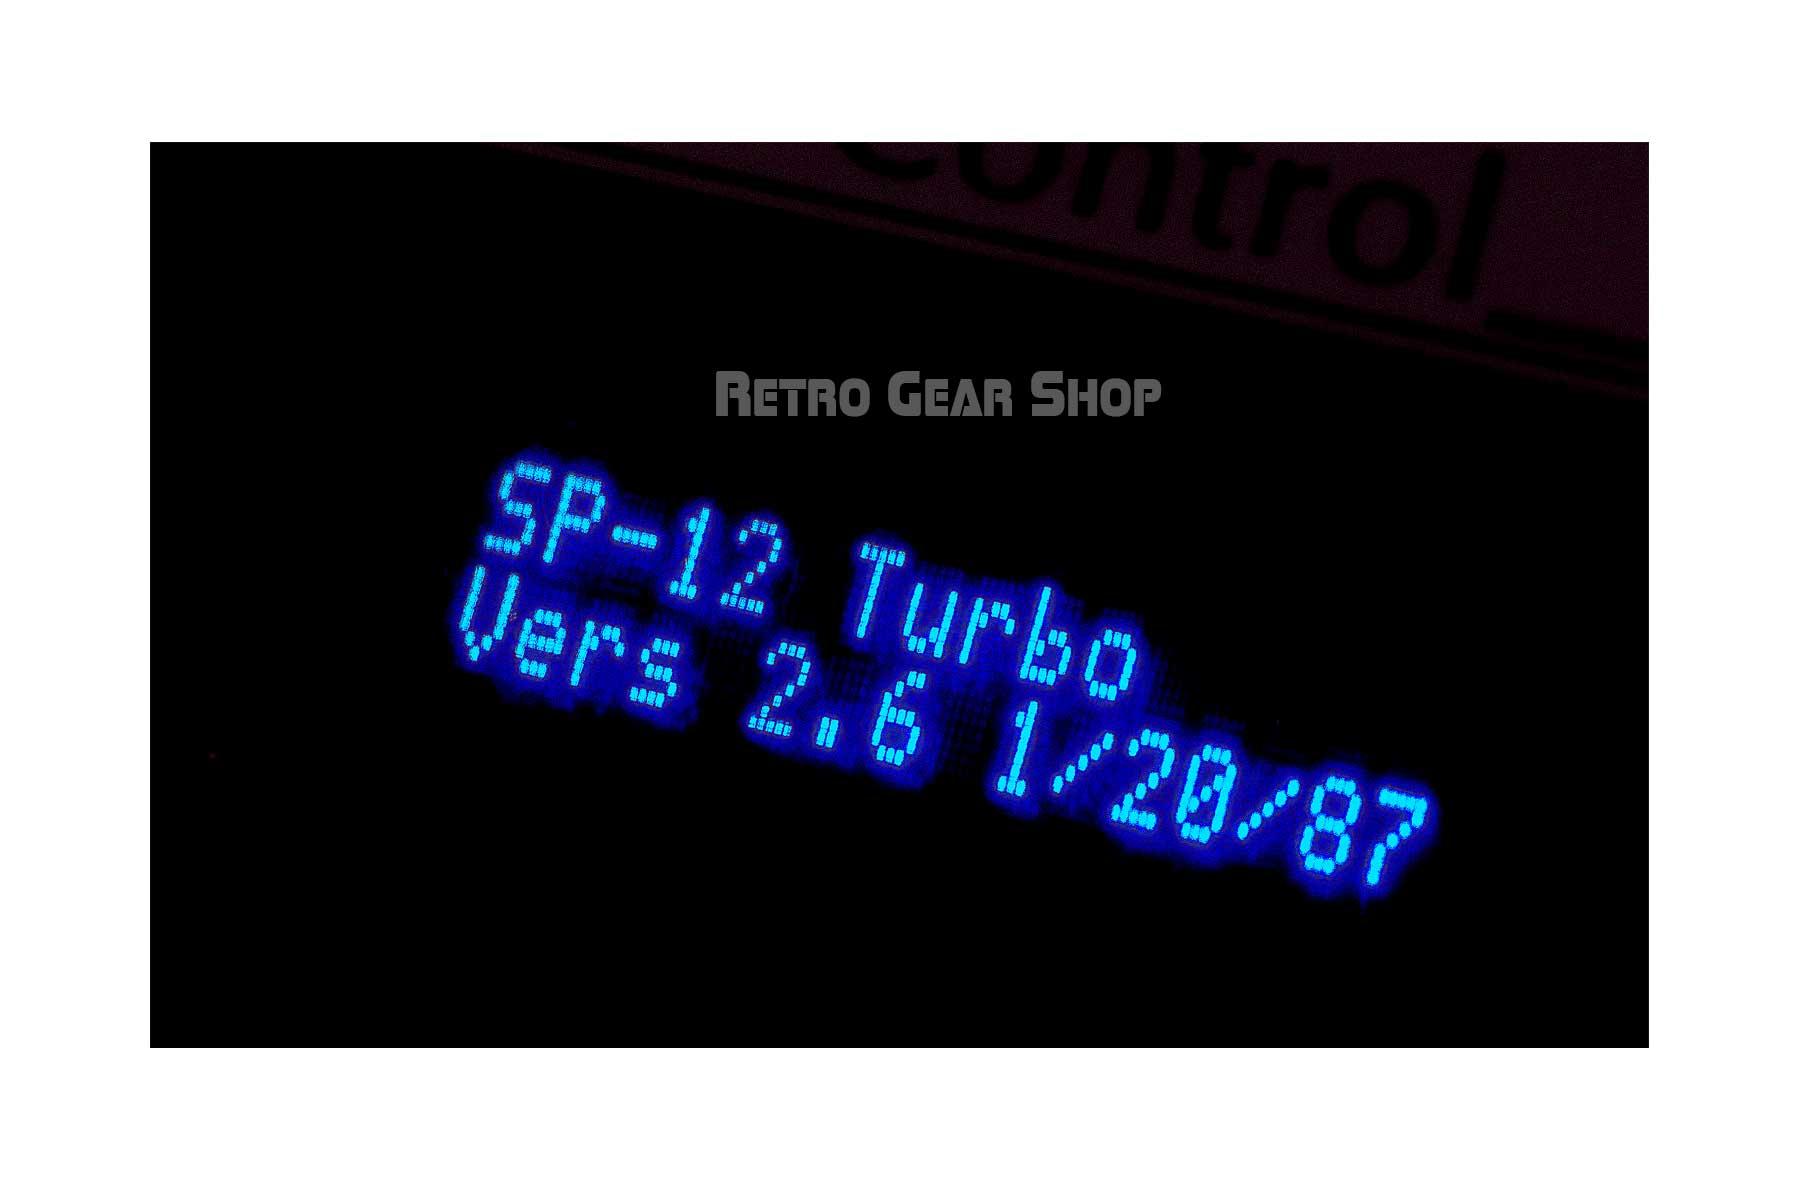 Emu SP-12 Turbo Custom Upgrades Noritake Blue VFD Display Screen